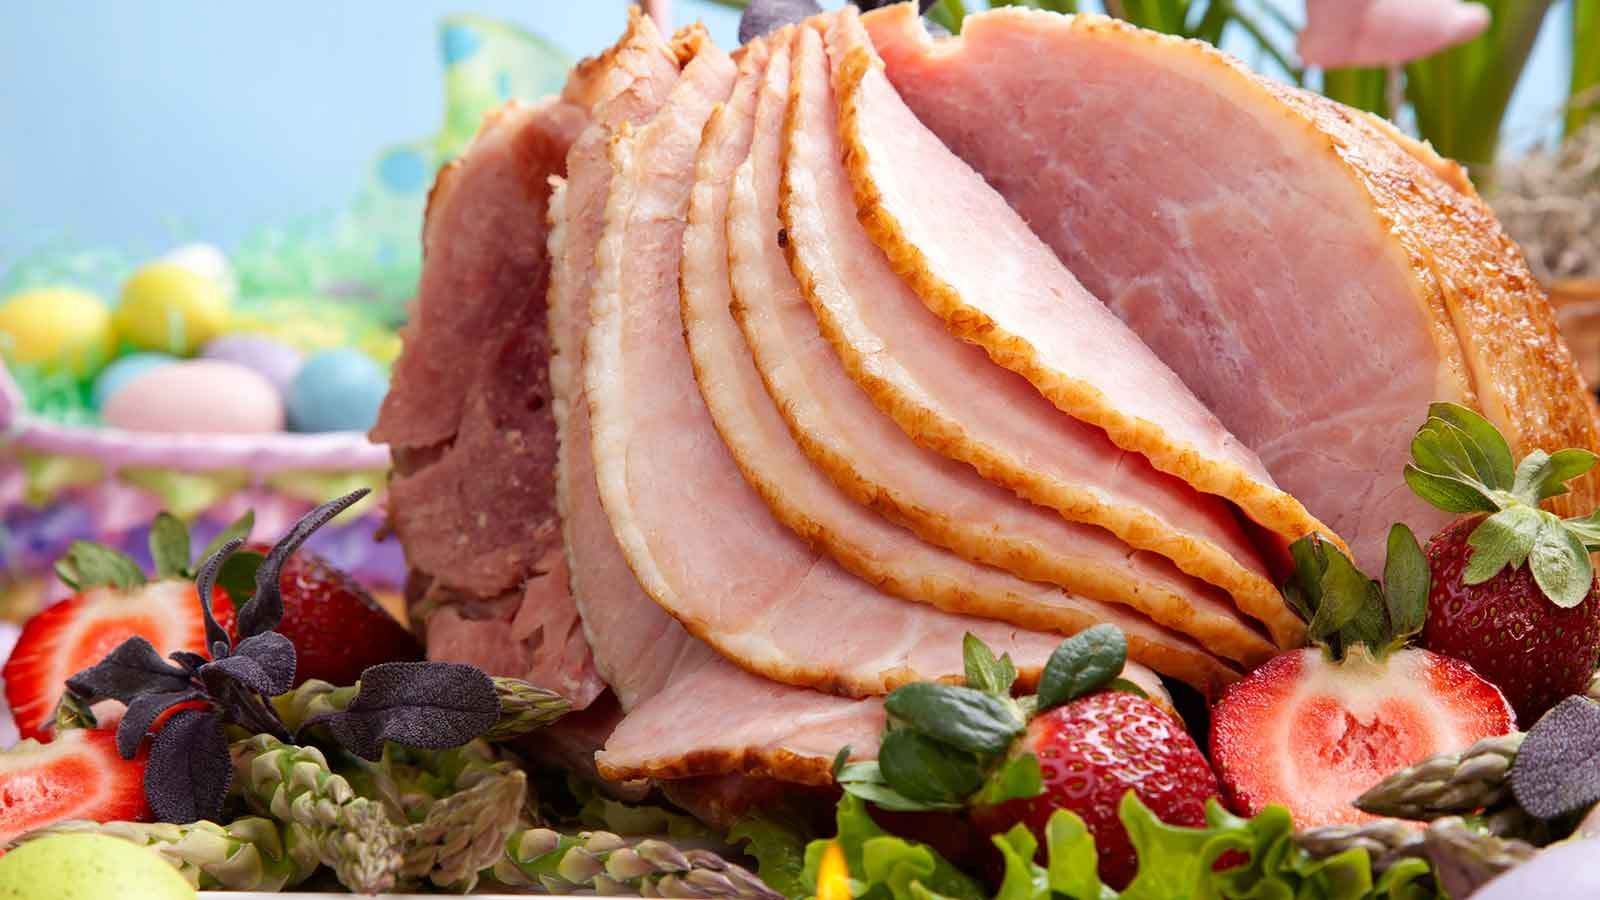 A sliced baked ham fanned open on a bed of fruit next to some colorful Easter eggs.